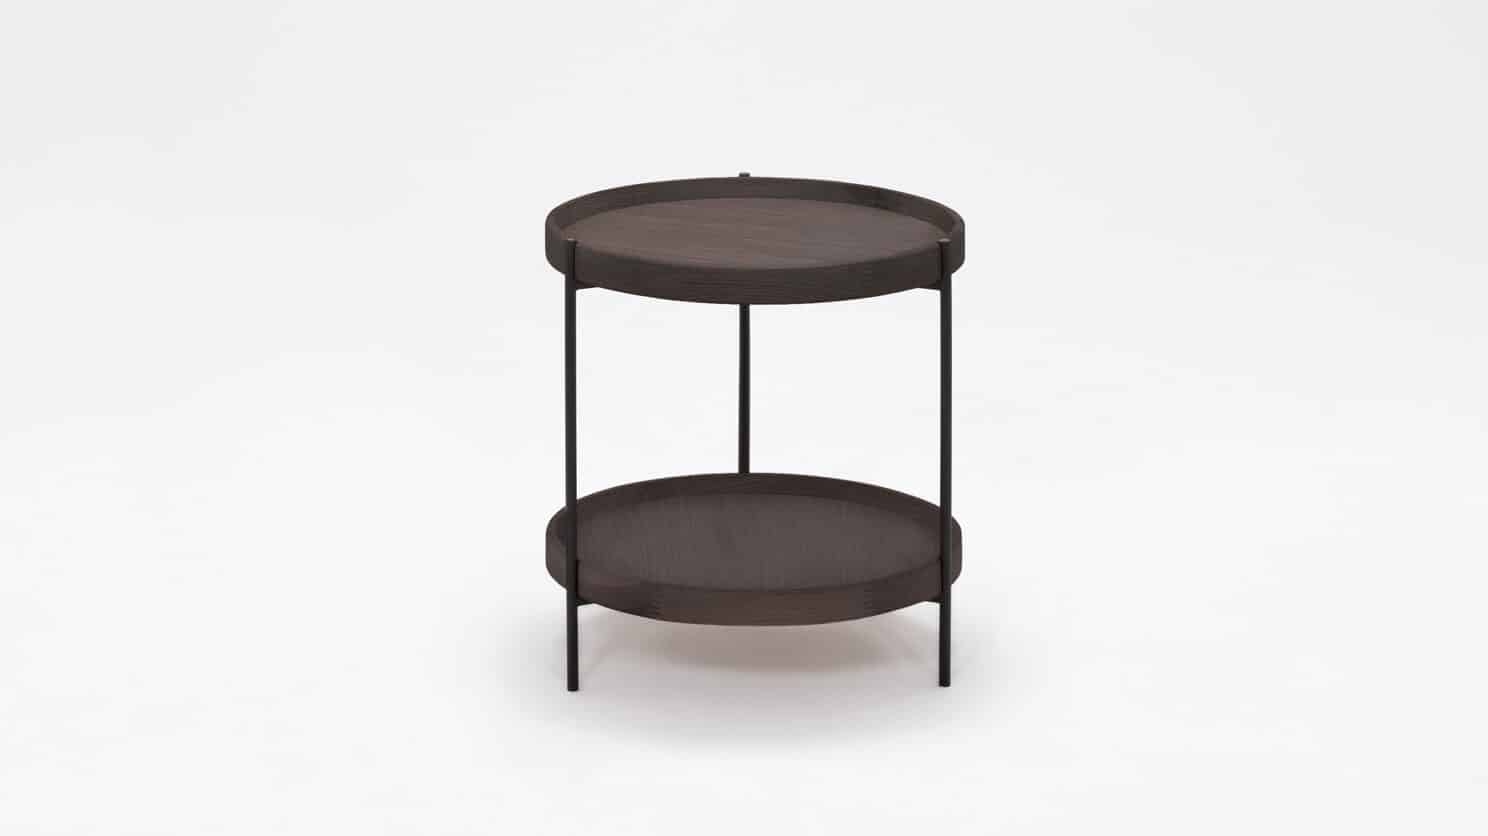 3020 417 17 1 end tables sage circular end table smoked oak front 01